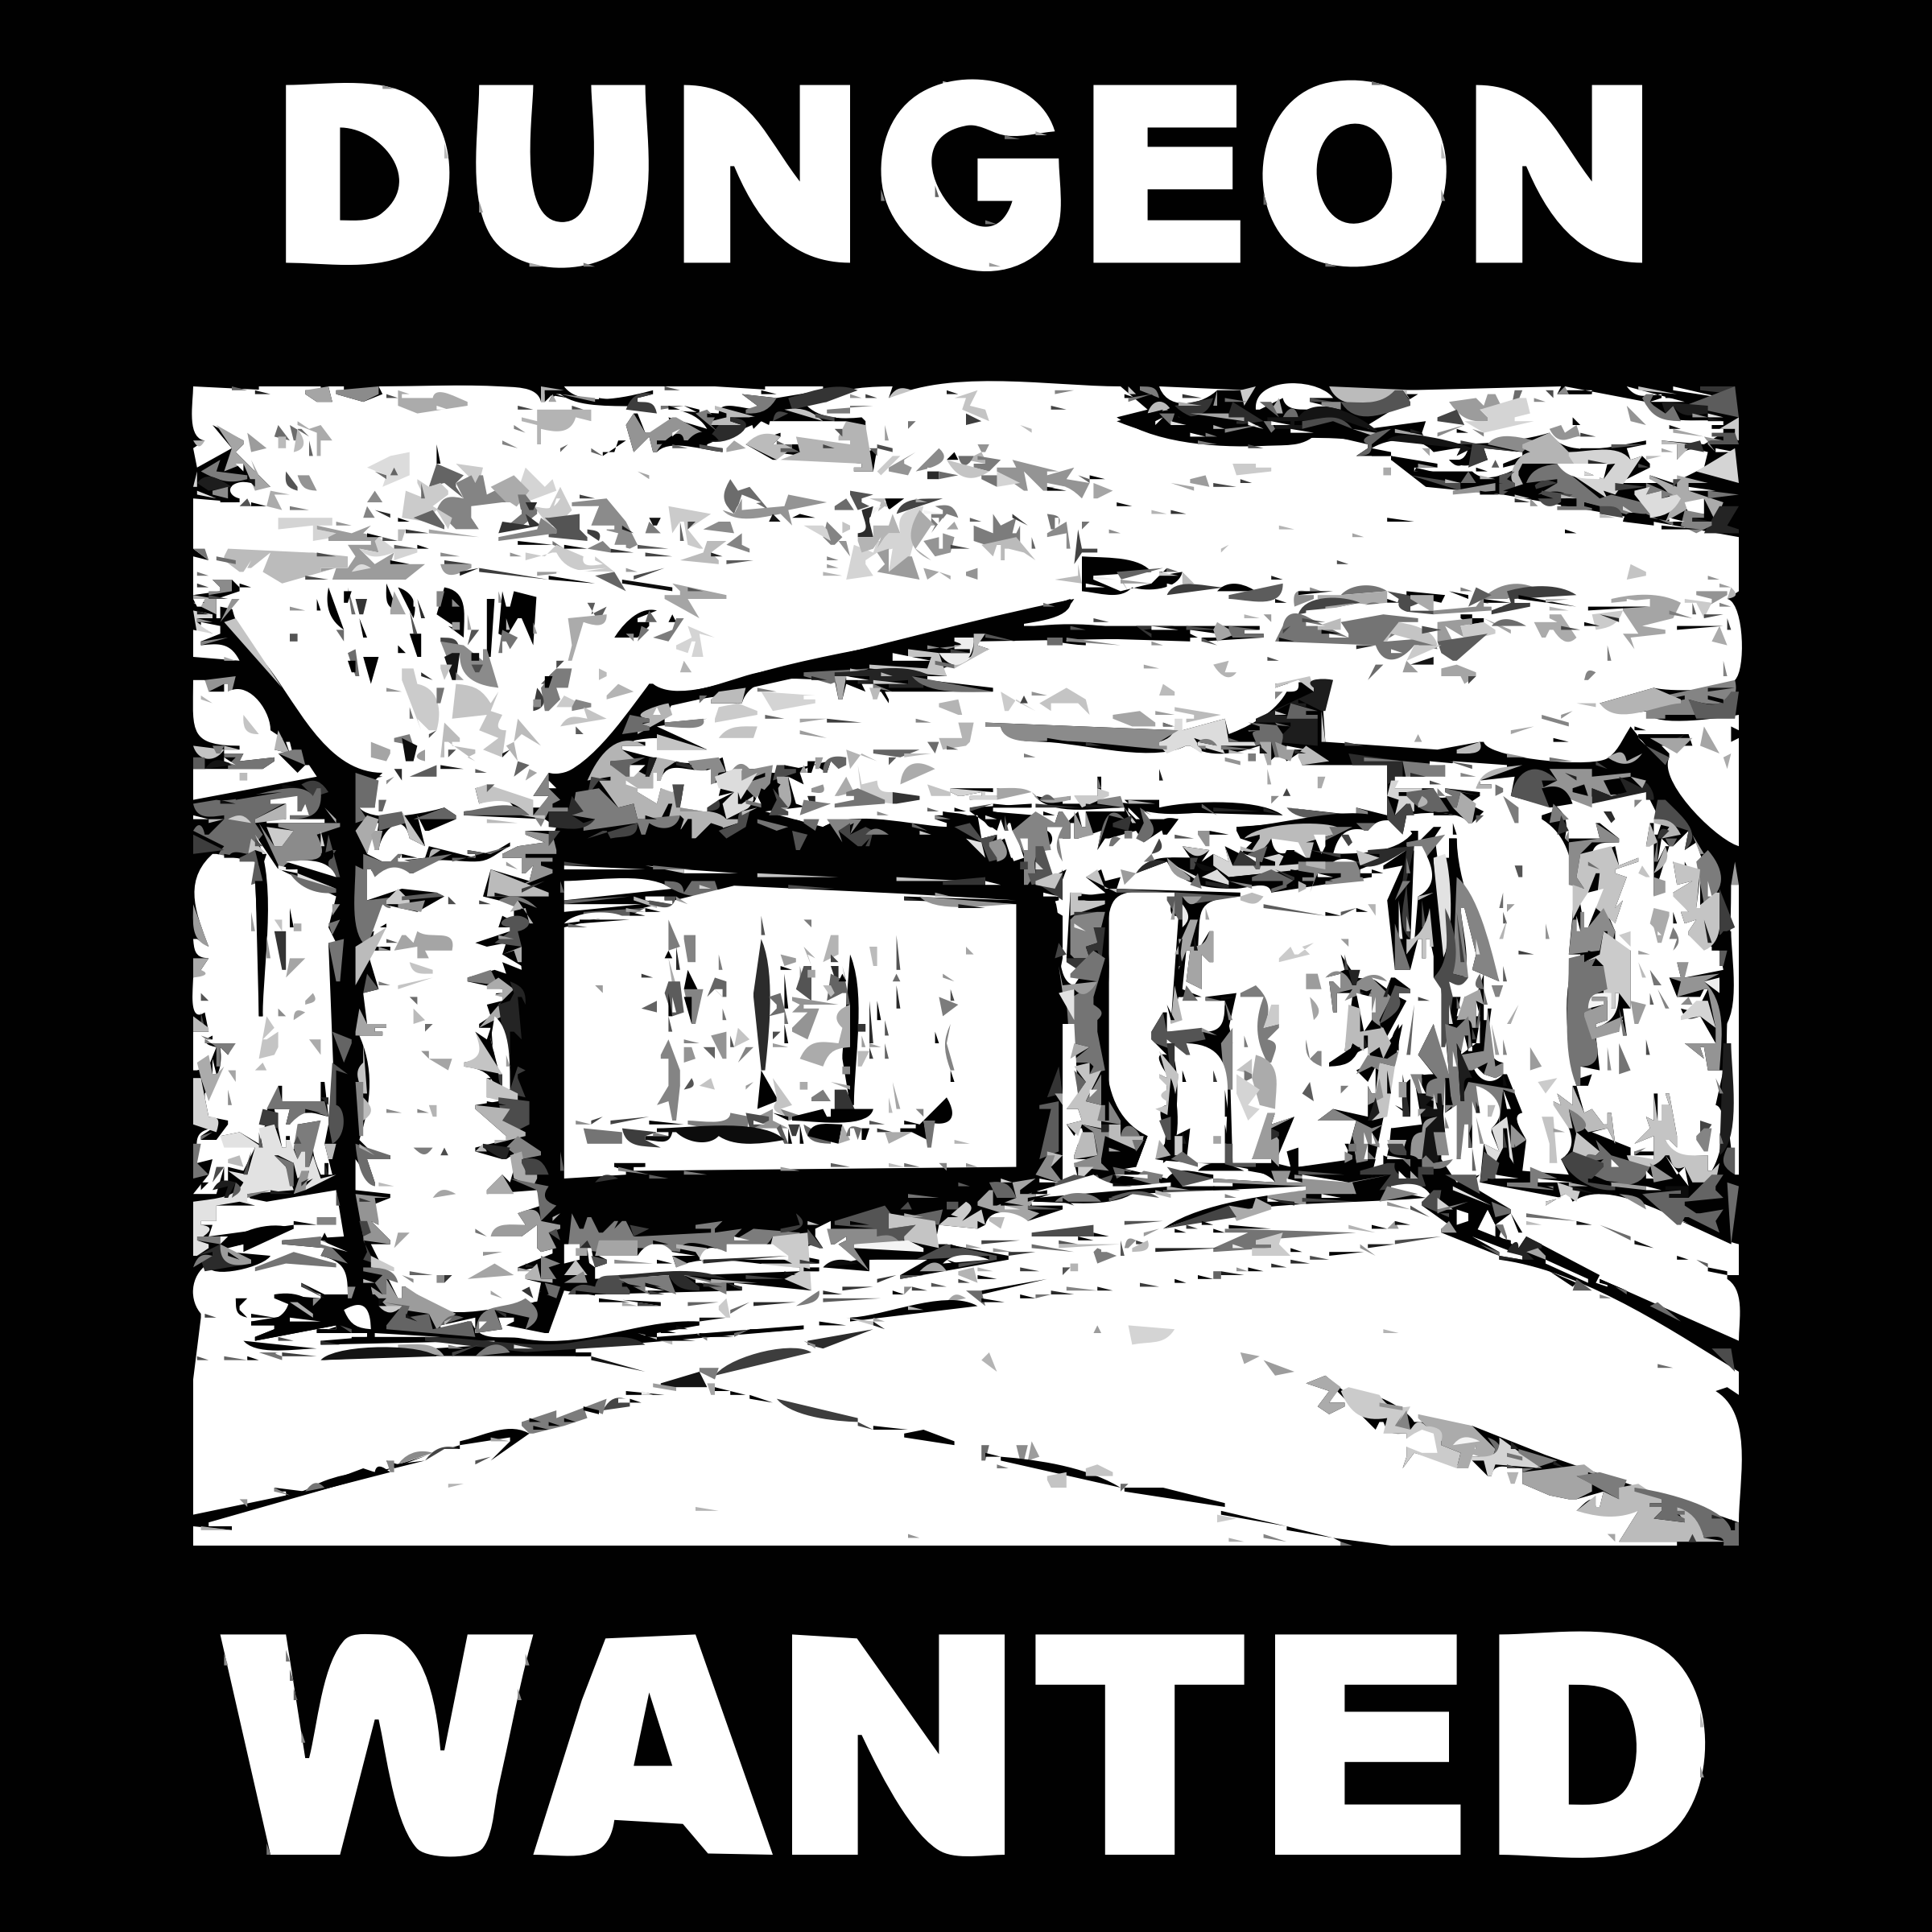 [request] Scenery 4 - DUNGEON by speedstar